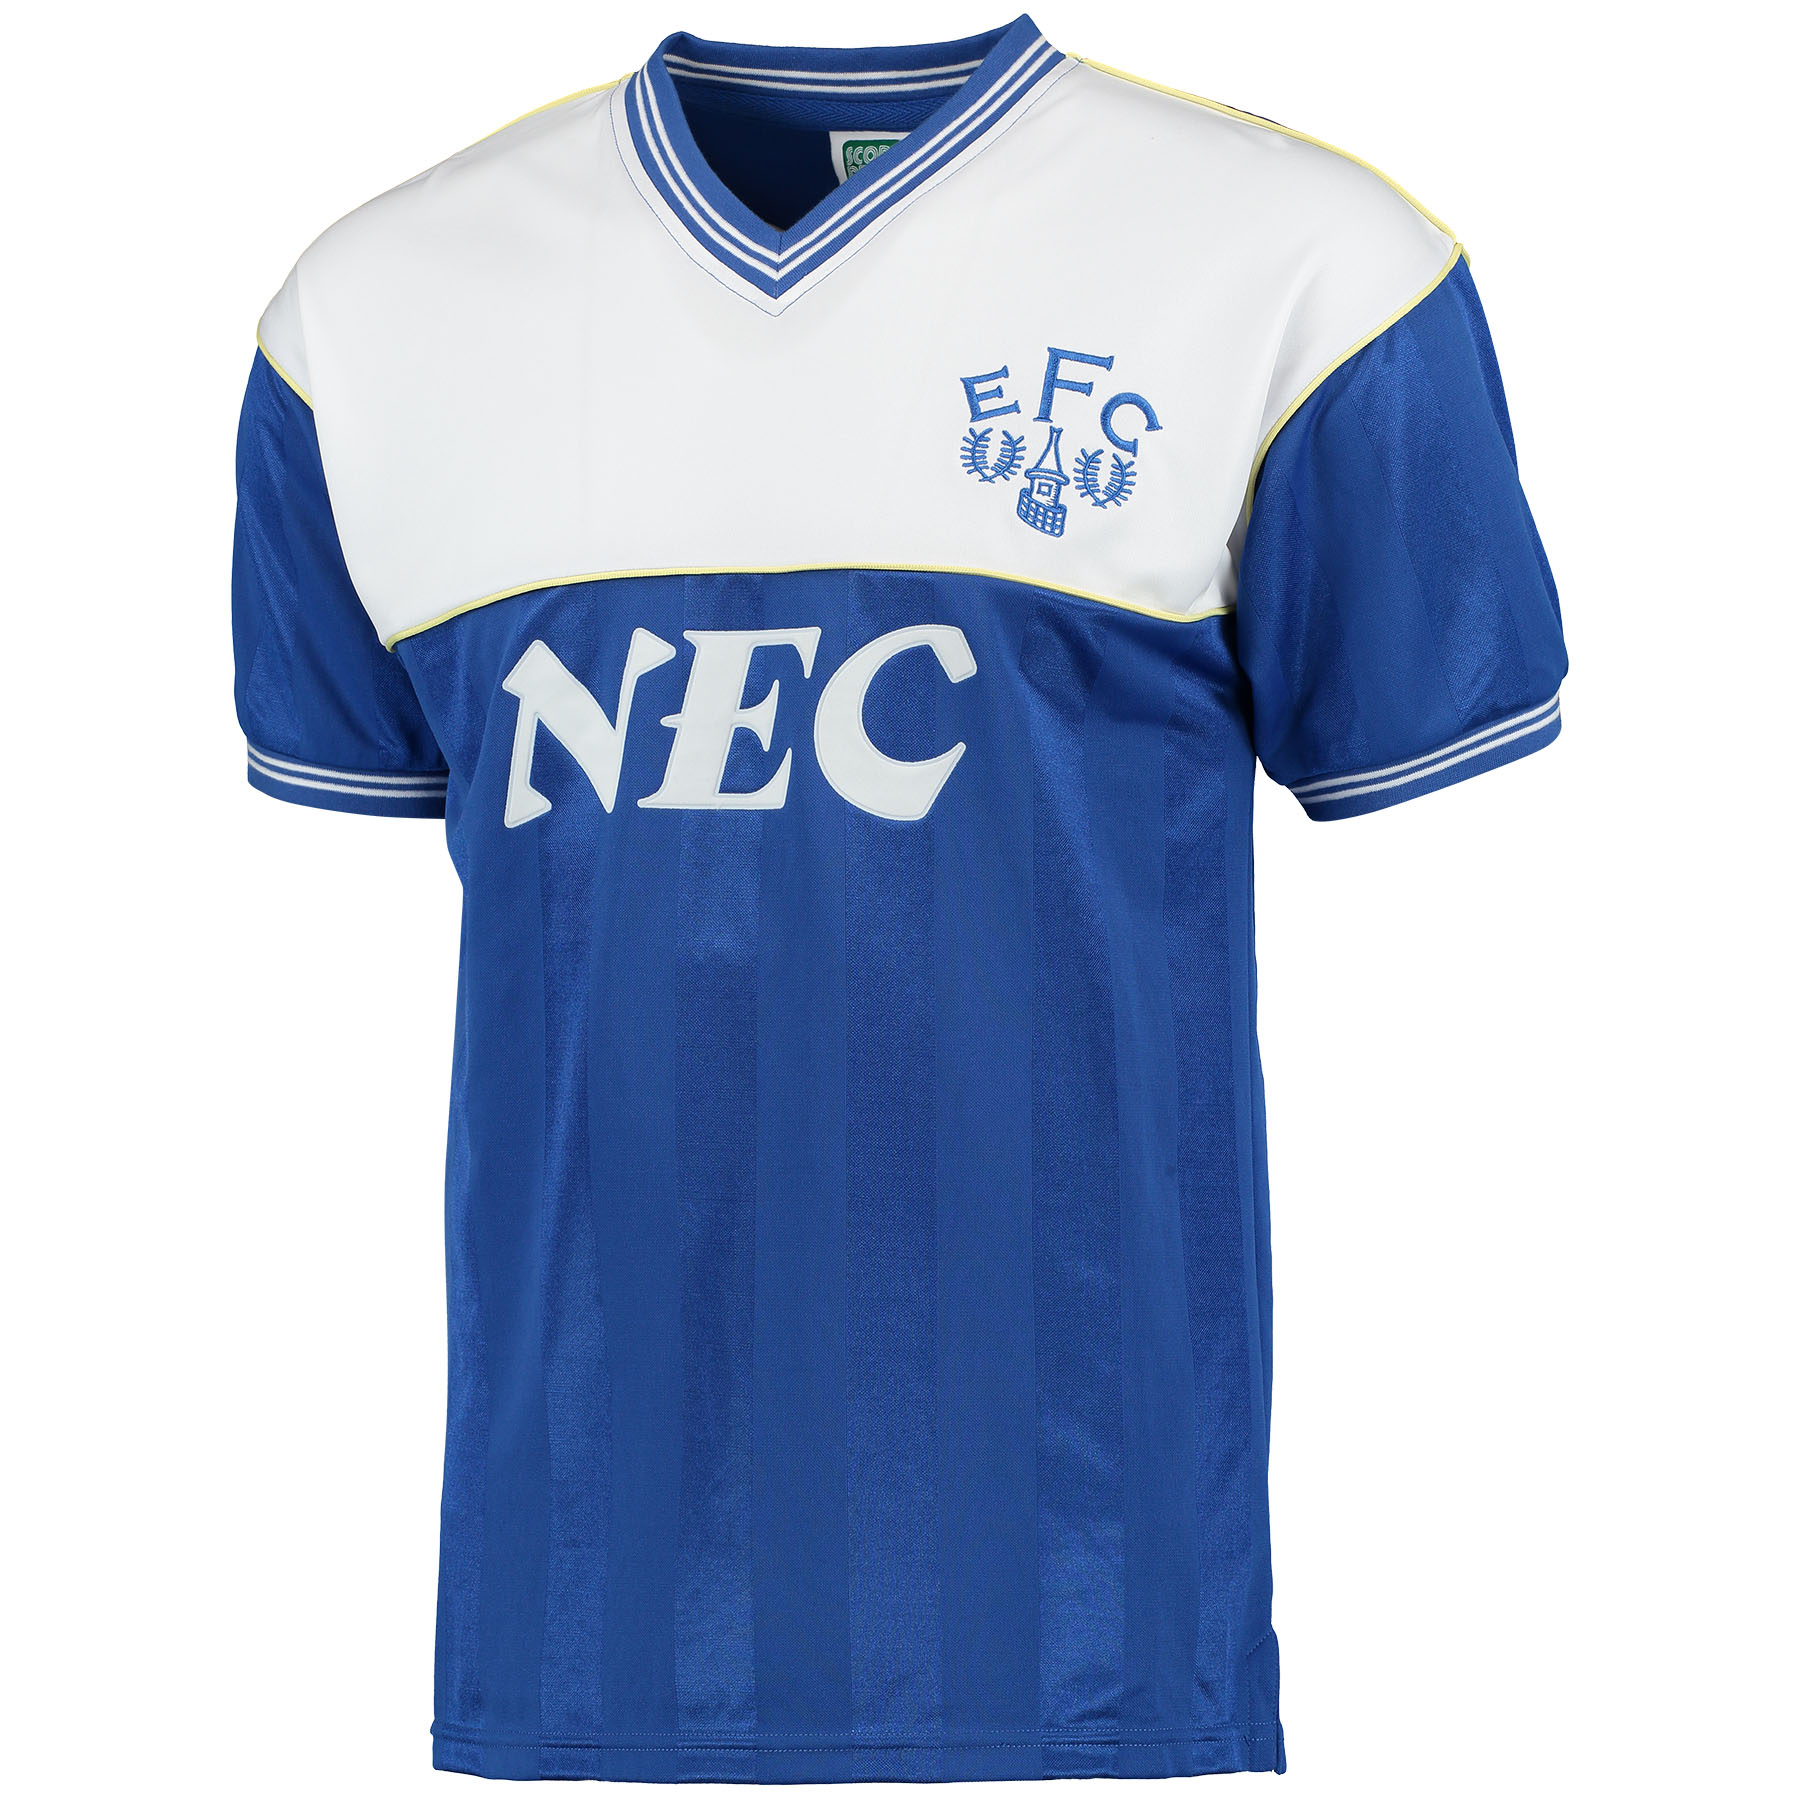 Everton 1986 Shirt - Blue/White